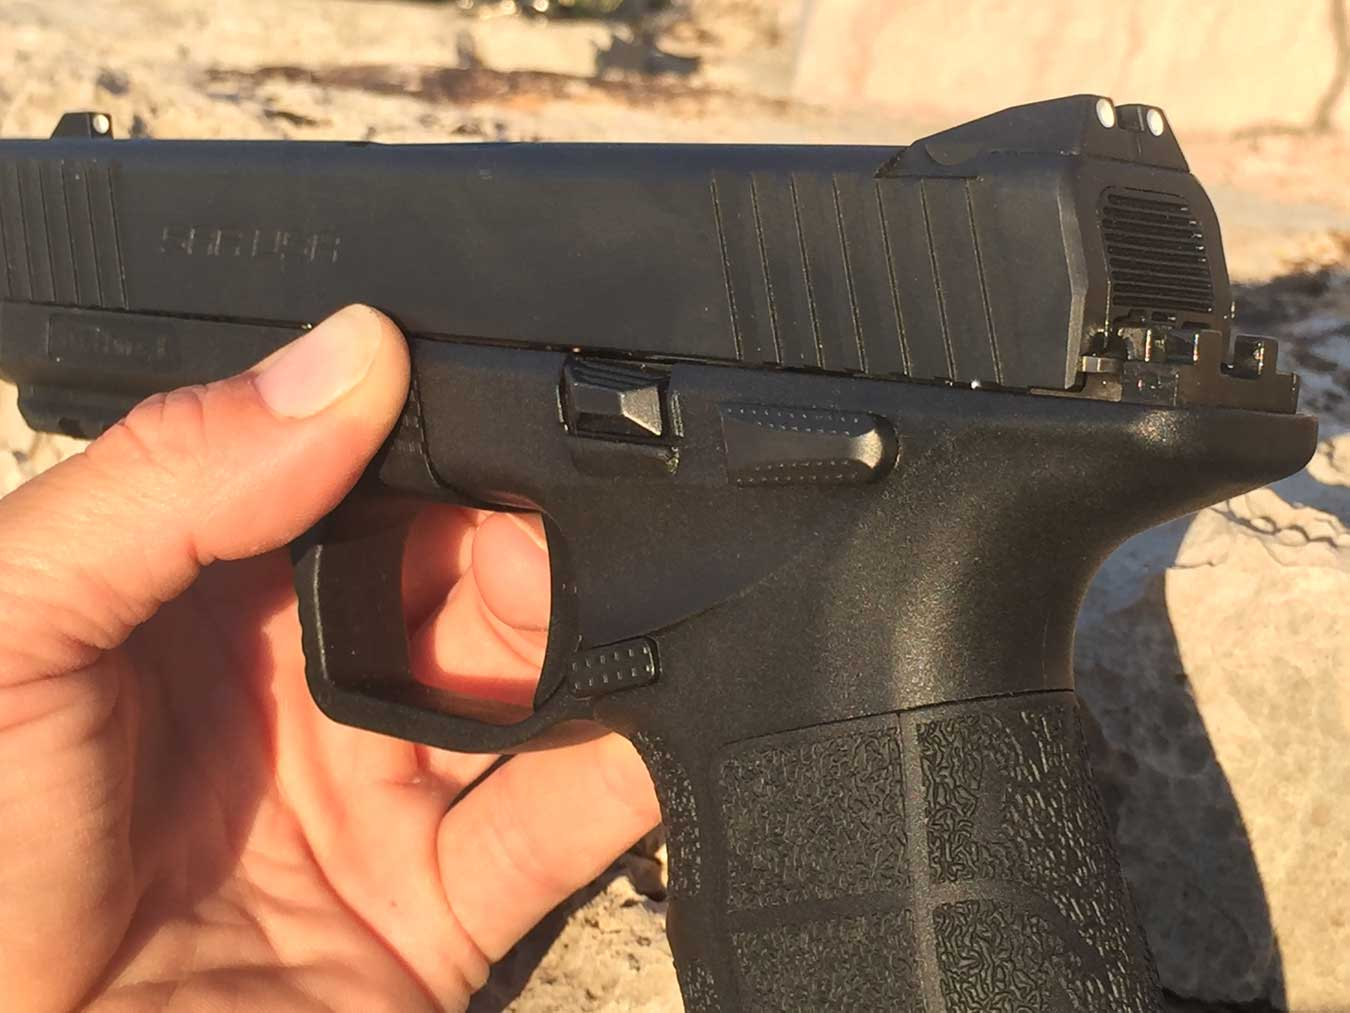 textured grip and takdown button on the Sarsilmaz SAR 9